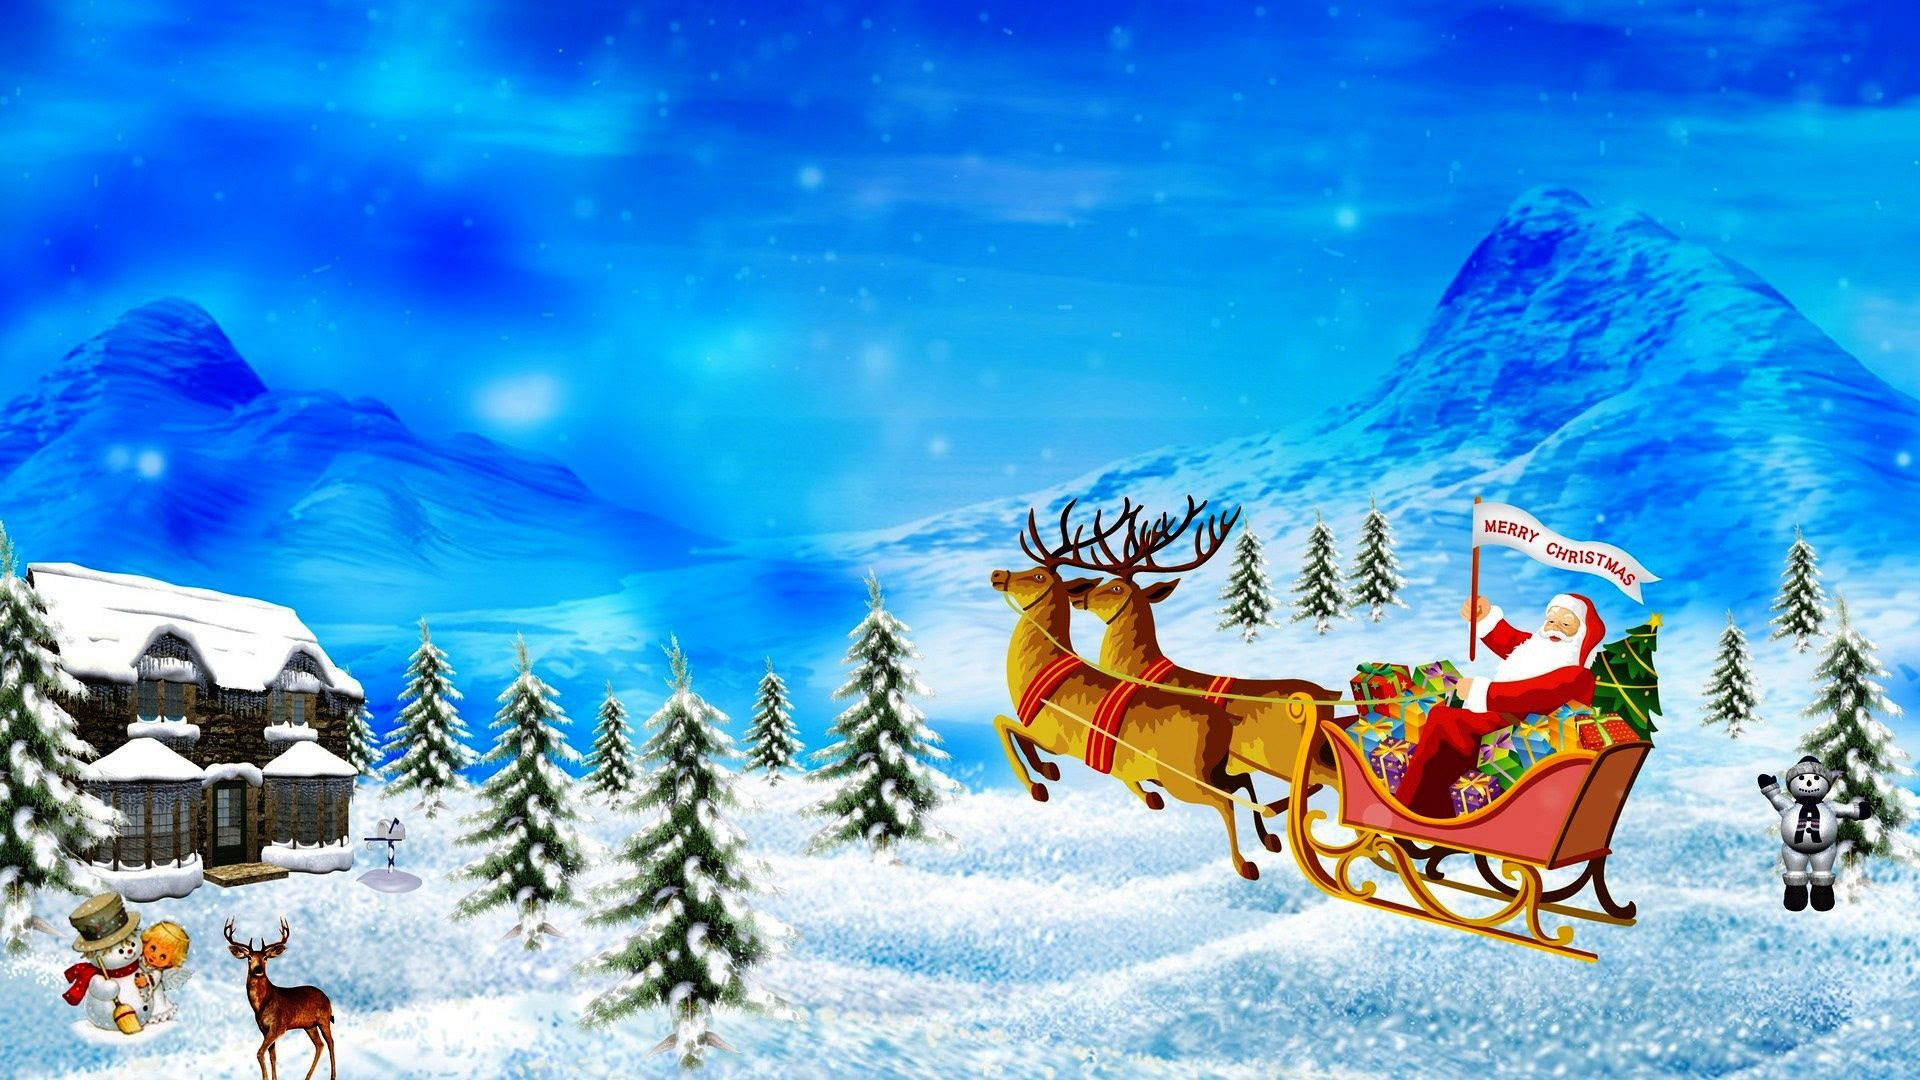 christmas wallpaper 03 merry christmas wallpaper 04 merry christmas